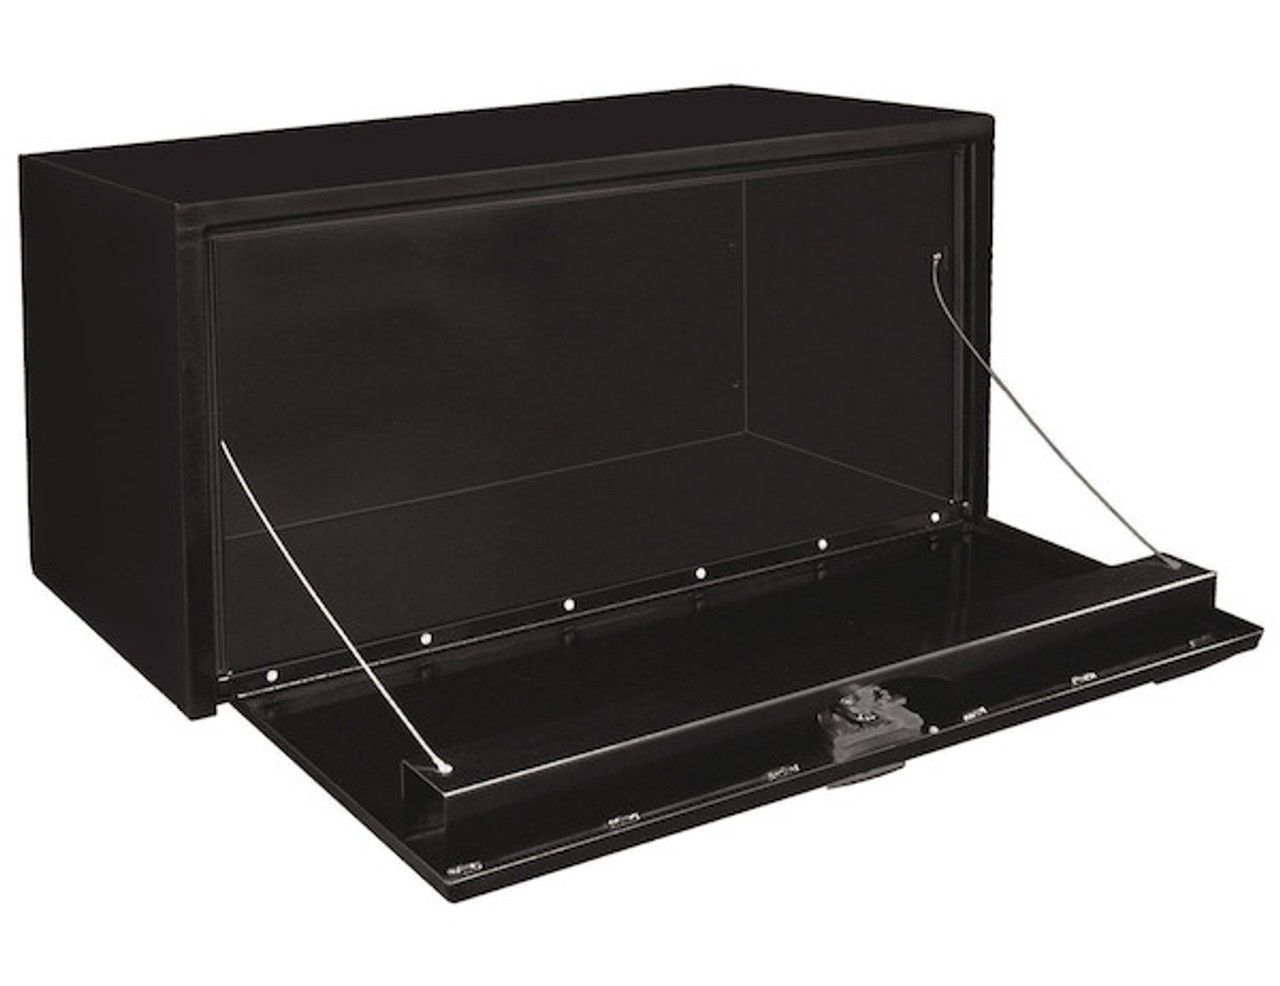 "1702305 BUYERS PRODUCTS BLACK STEEL UNDERBODY TRUCK TOOLBOX WITH T-LATCH 18""HX18""DX36""W"